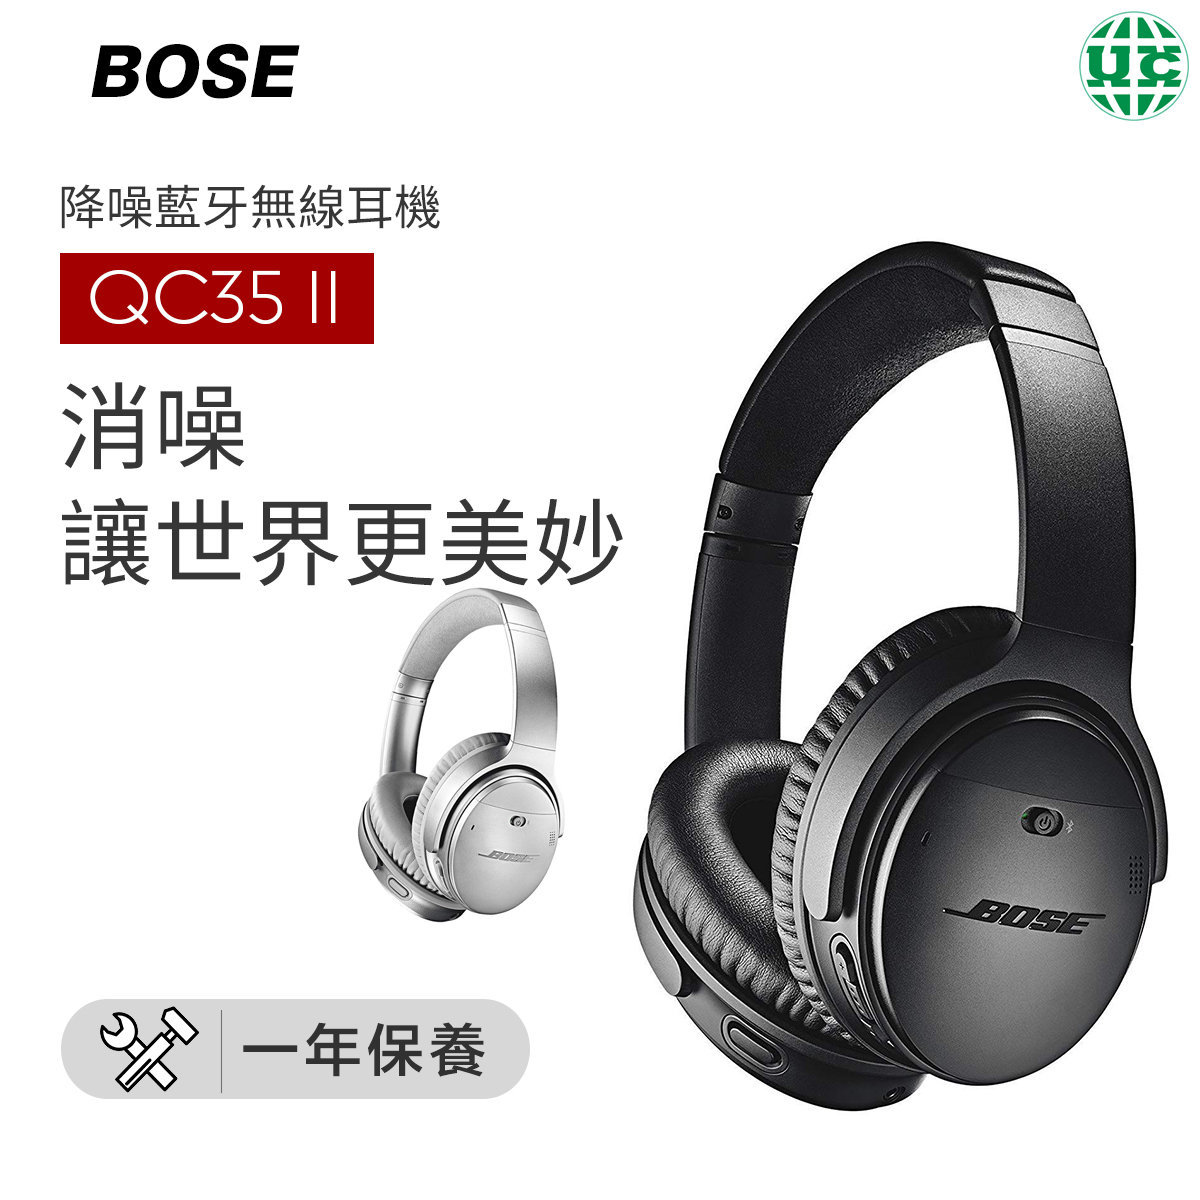 Quiet Comfort 35 II Noise Cancelling Bluetooth Wireless Headset QC35 Second generation Black (parall